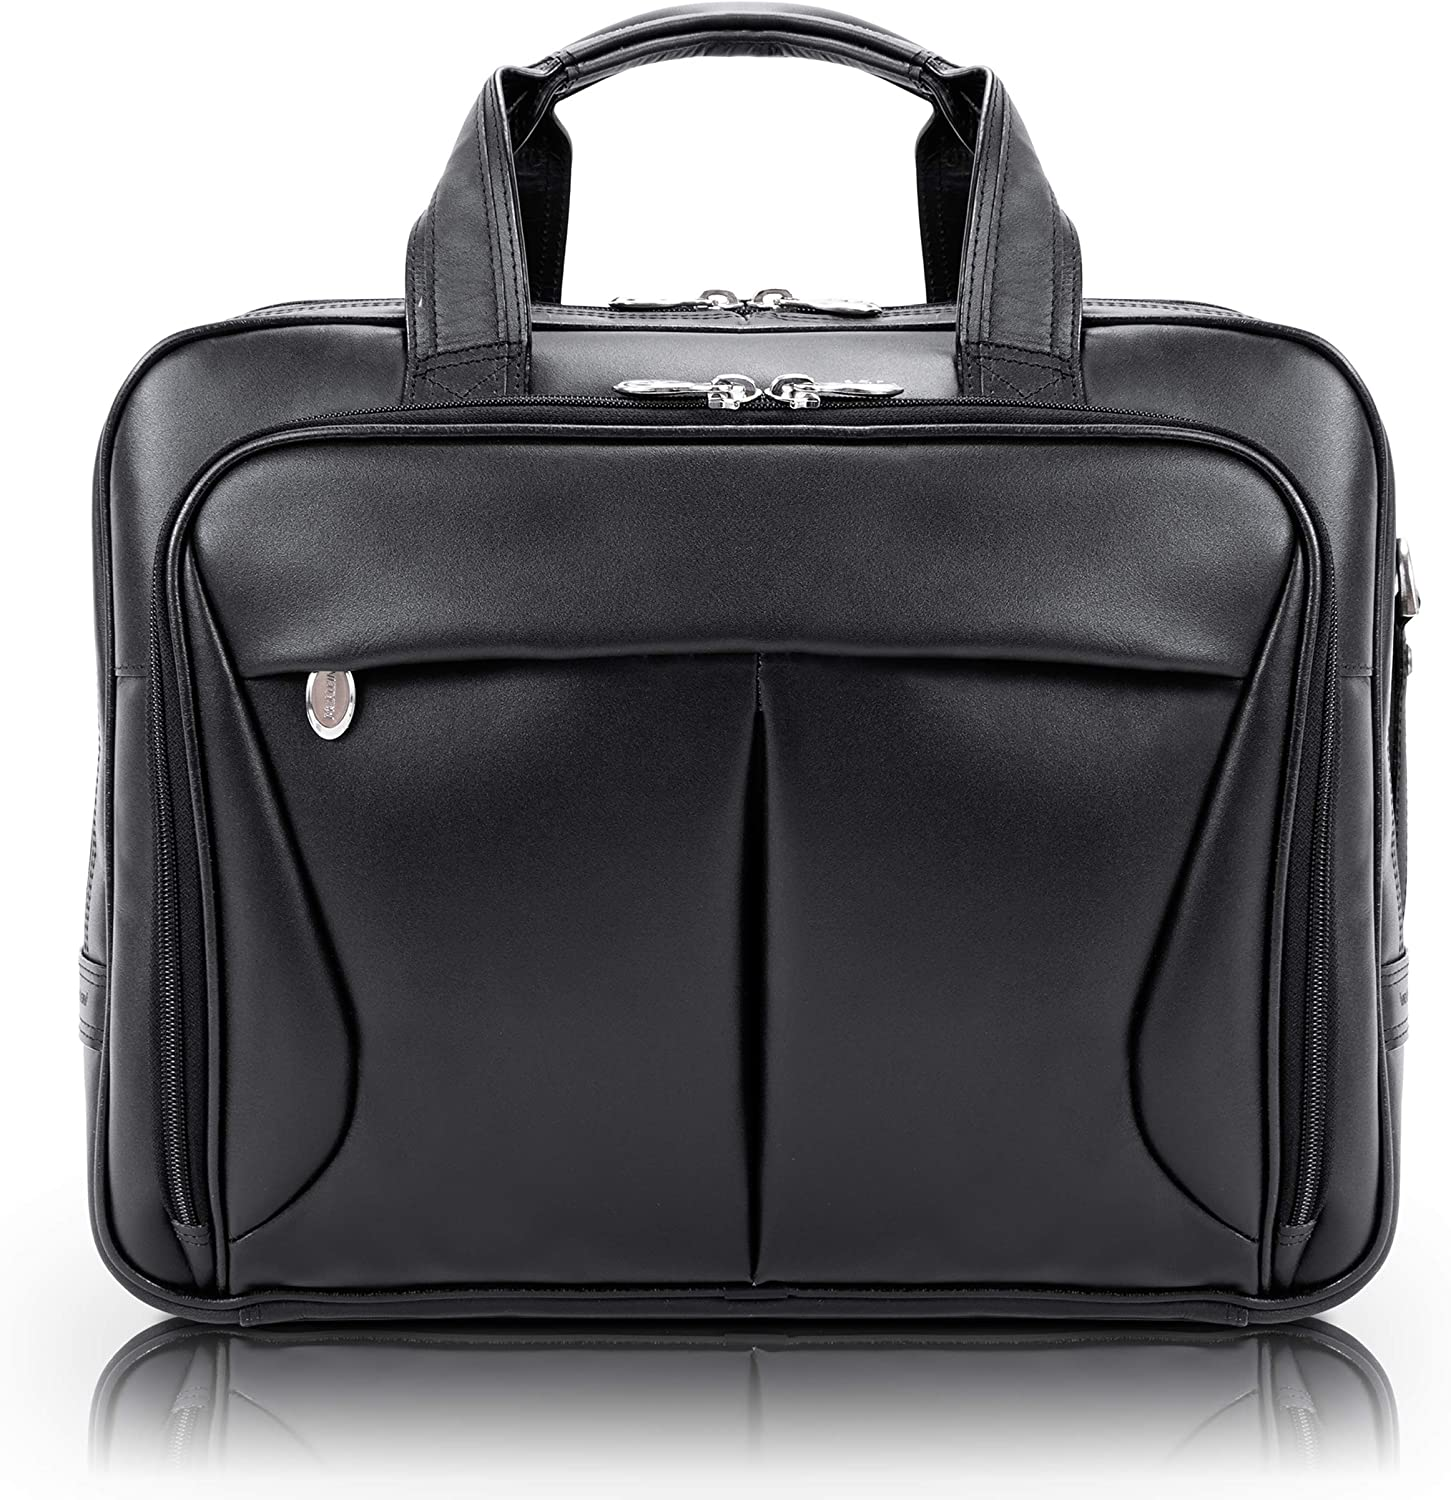 McKlein USA Pearson Leather Expandable 15.4 Inch Laptop Briefcase